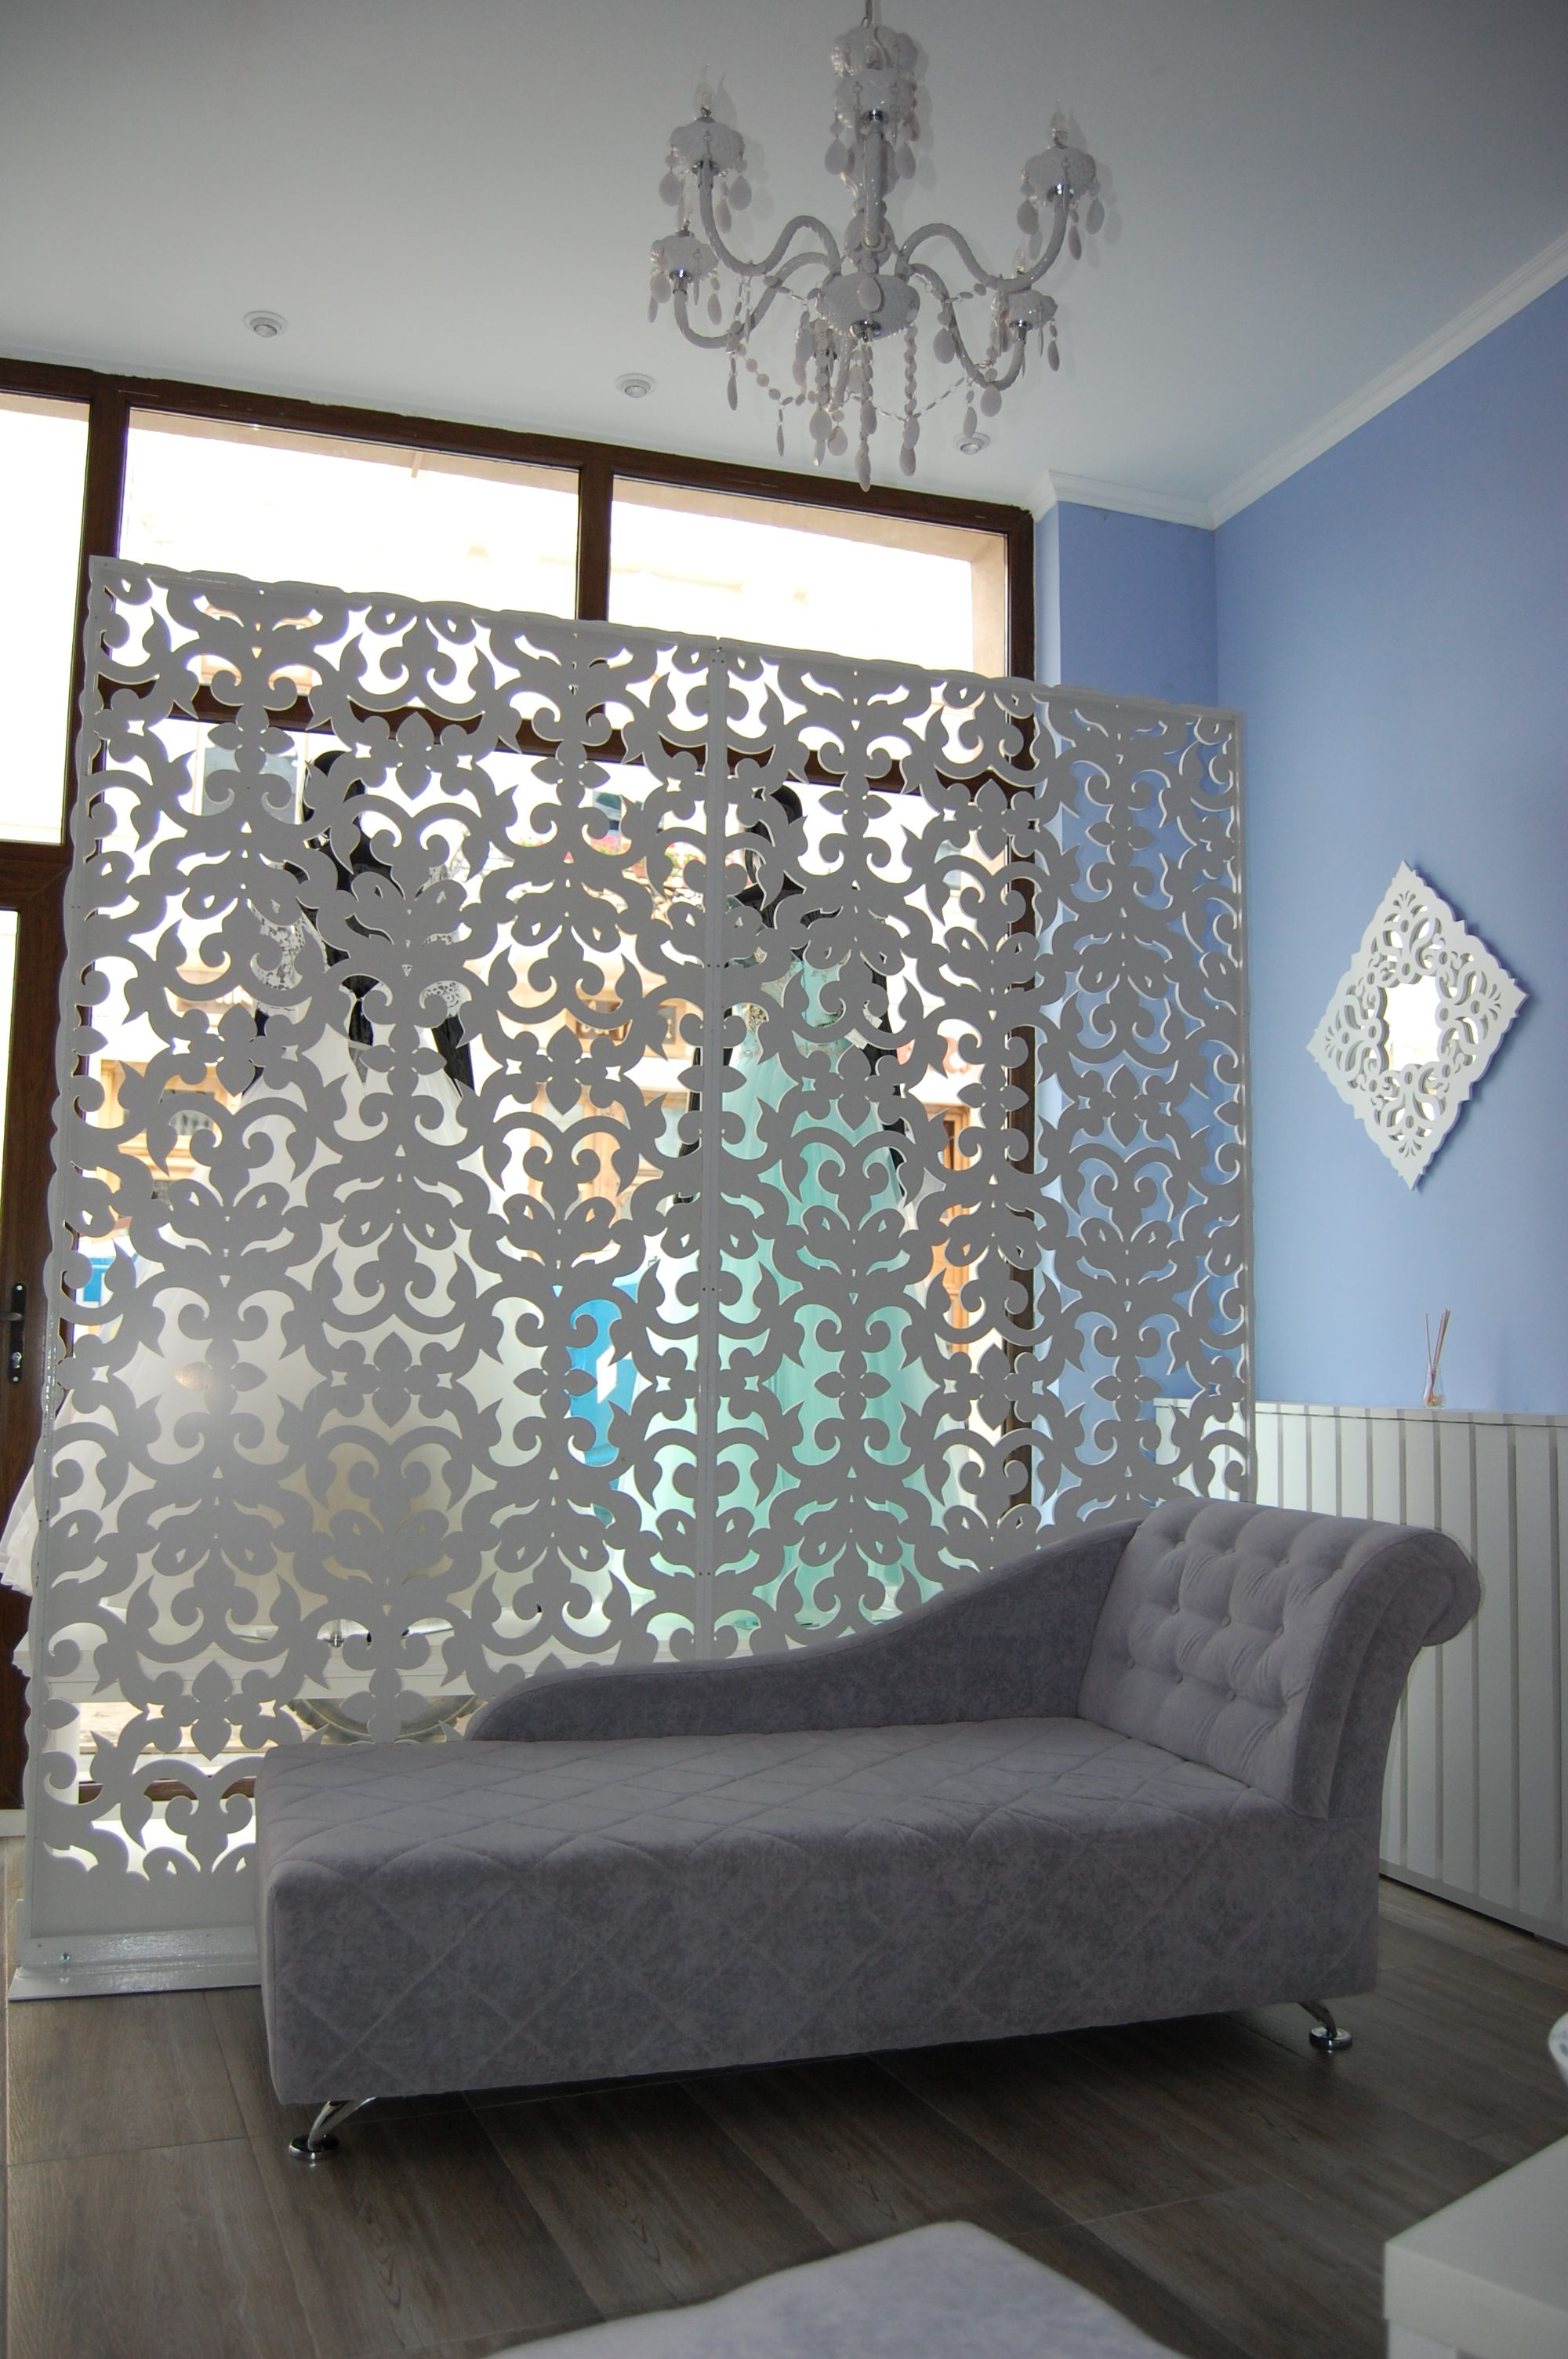 Room Dividers, Outdoor Planters, Panel, Metal Work, Wall Hangings, Porch,